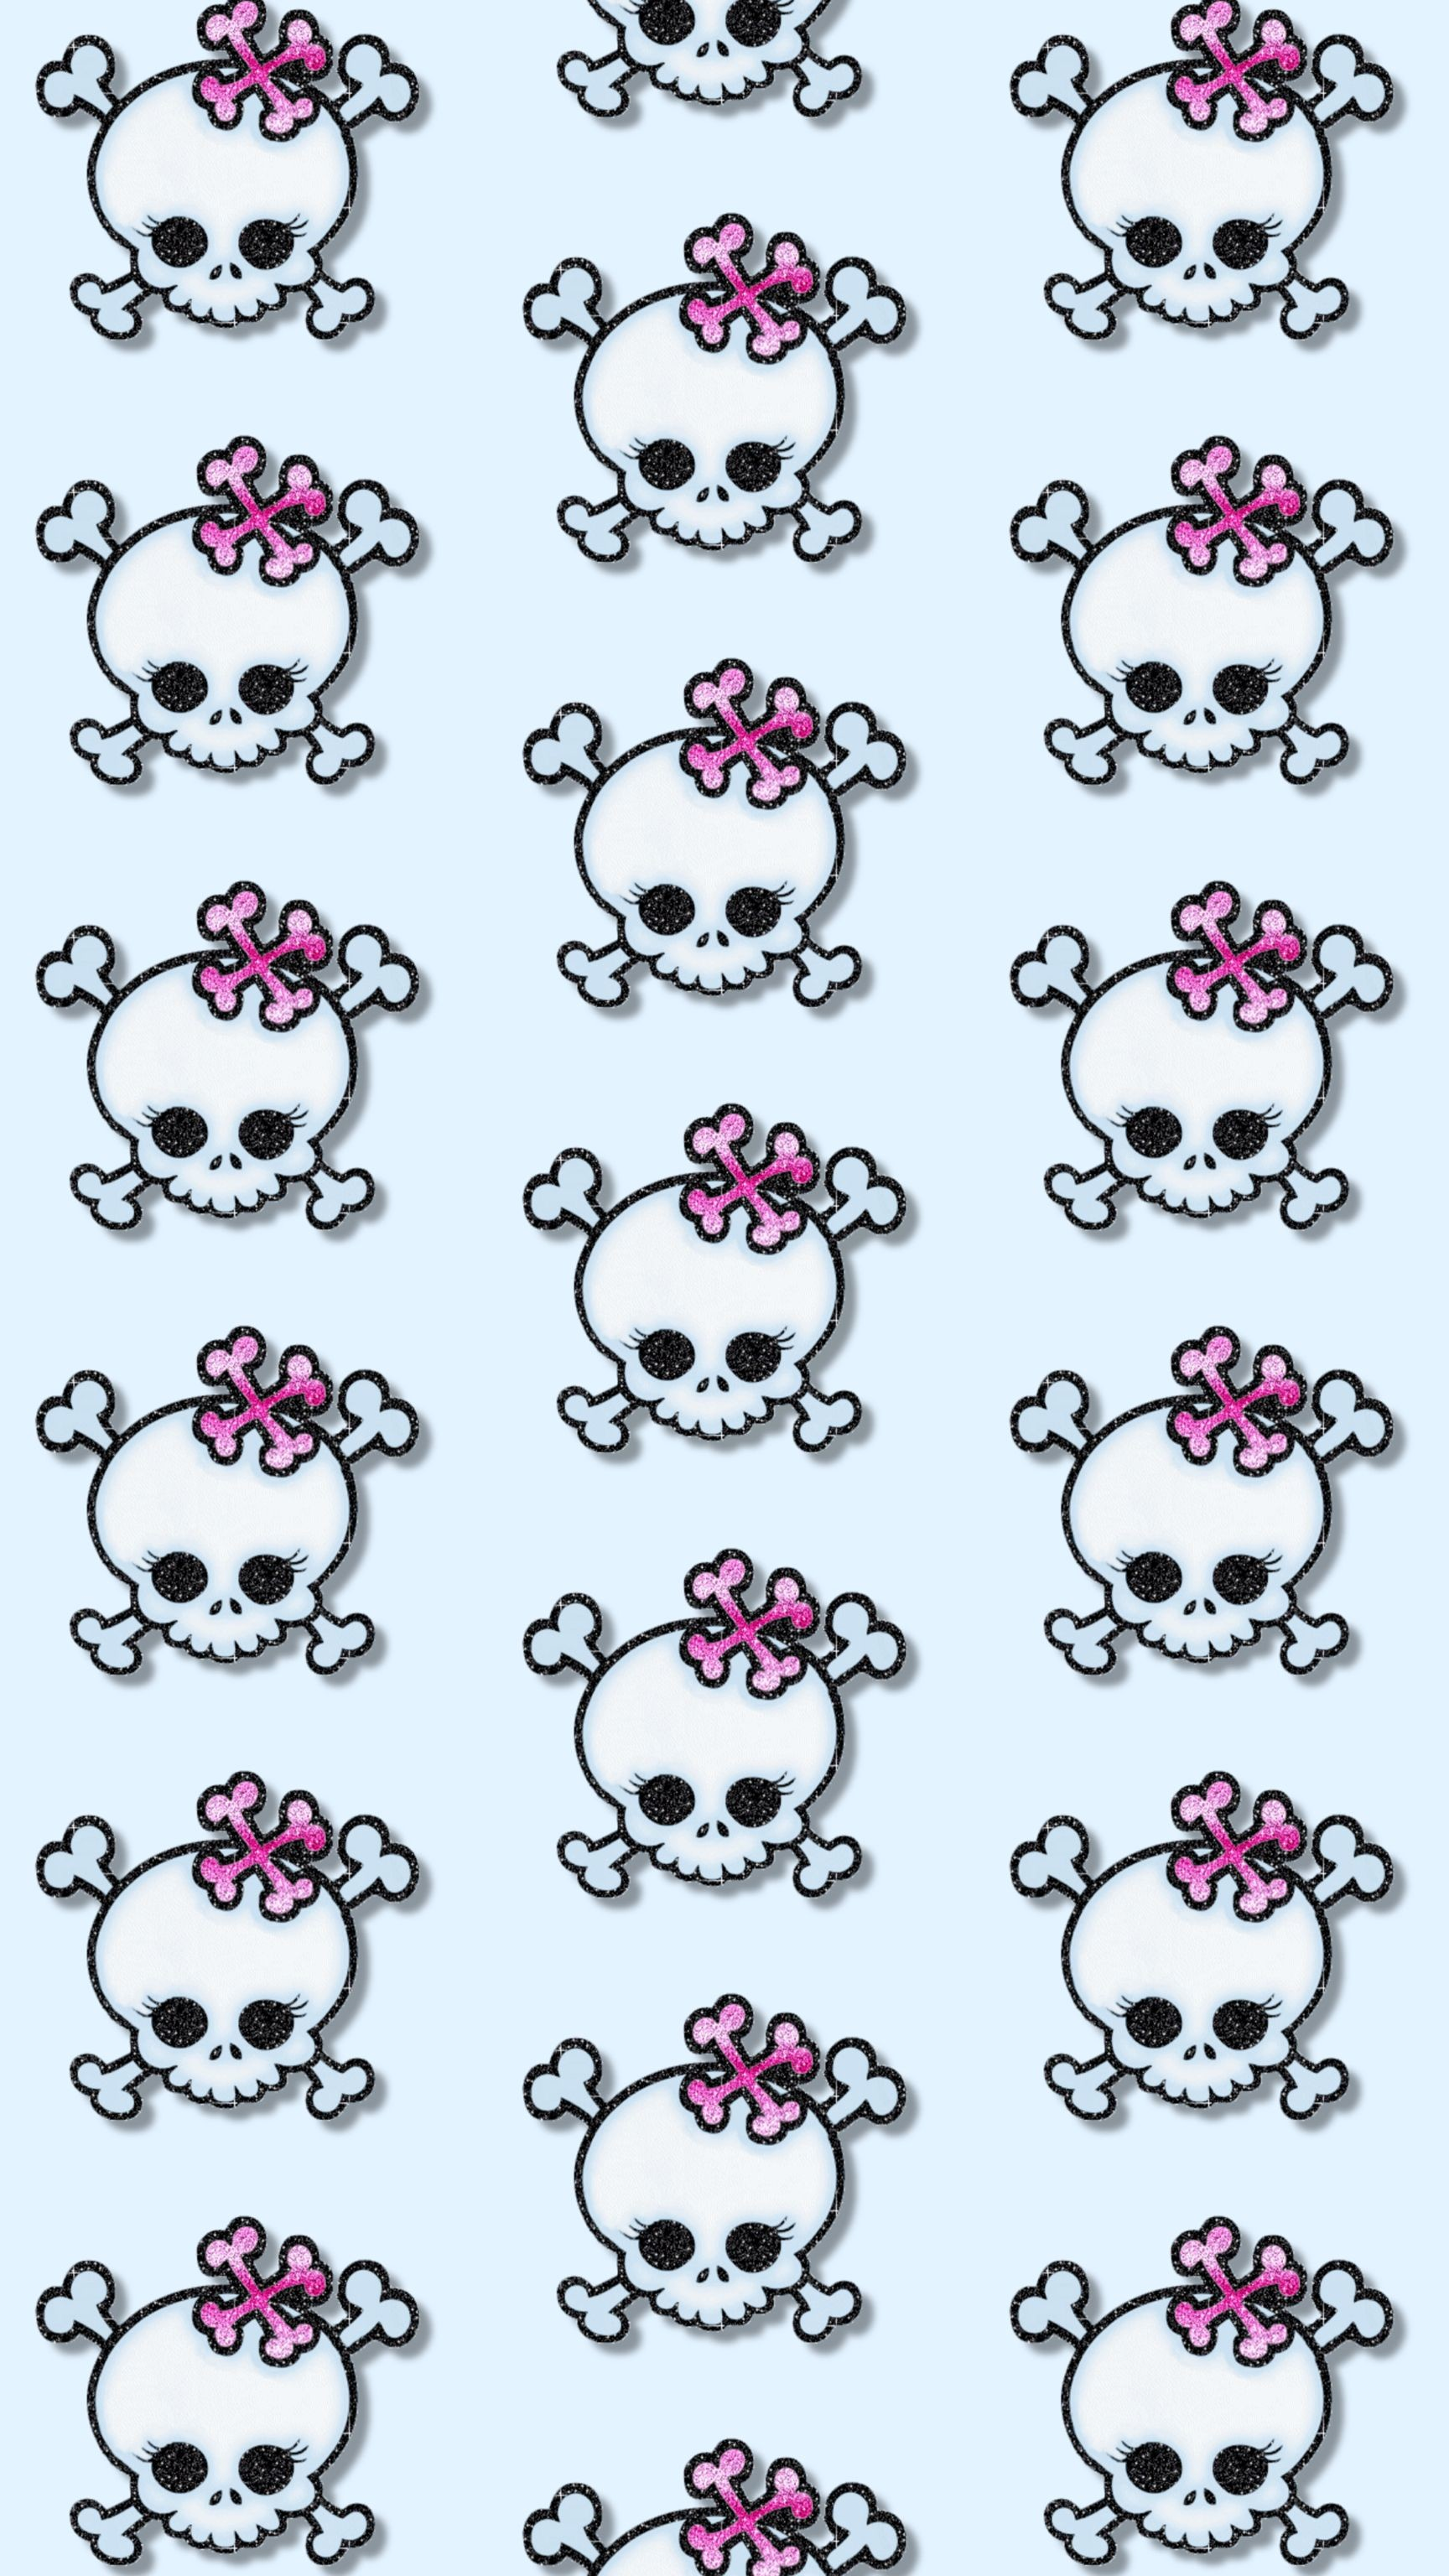 Girly Skull wallpapers - HD wallpaper